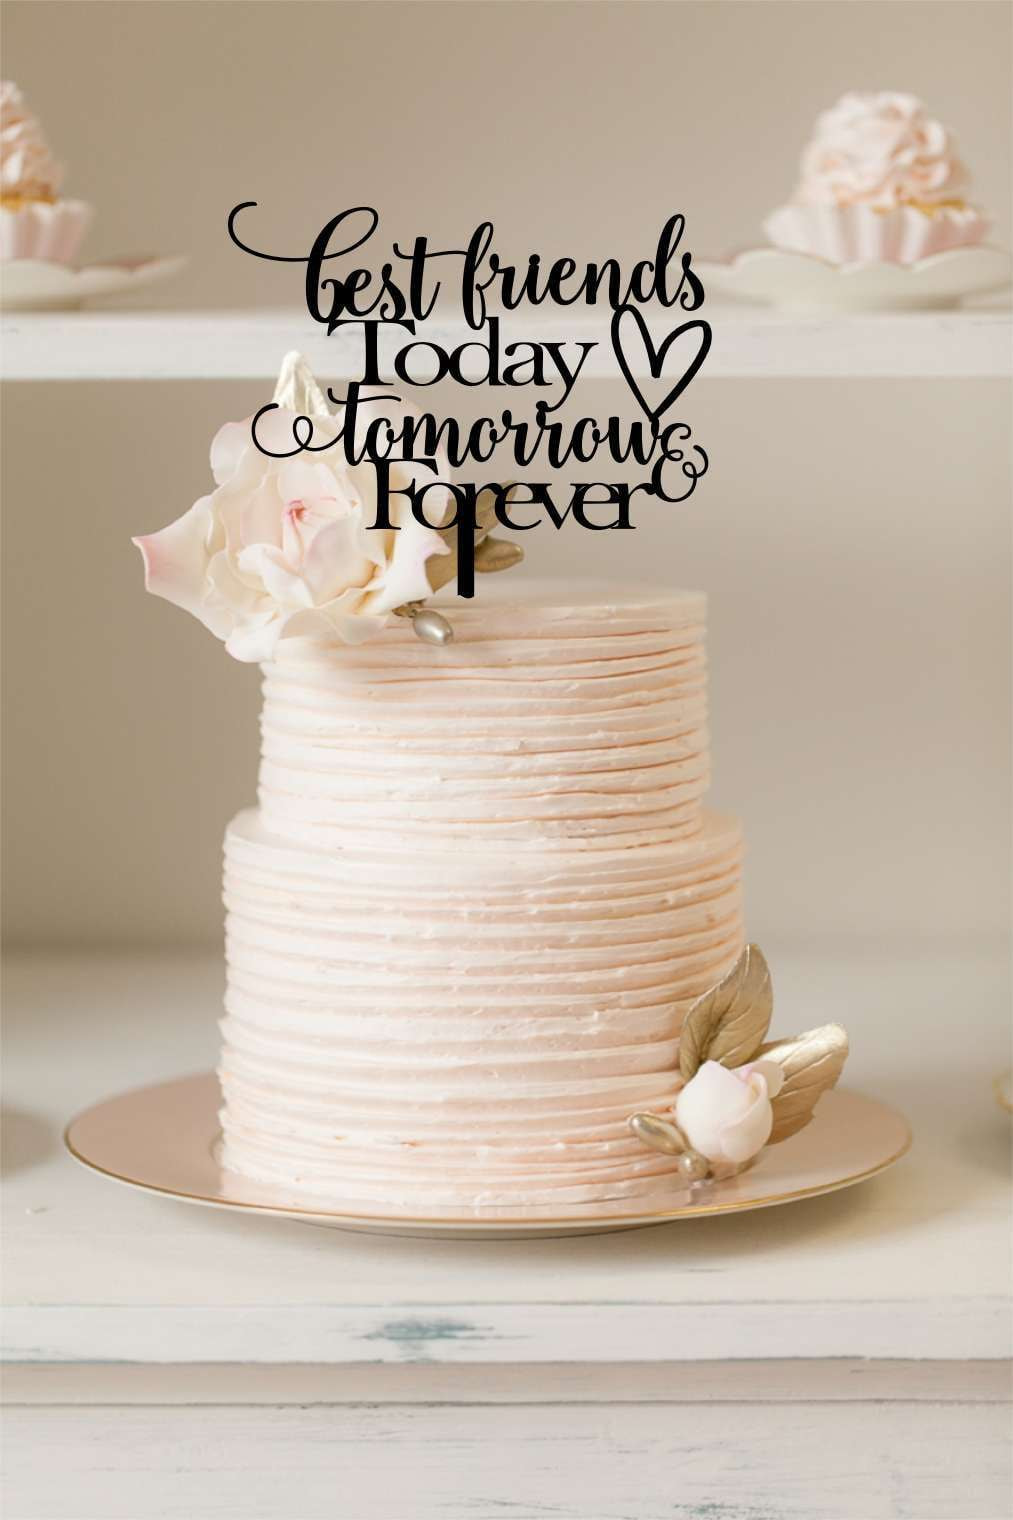 Cake Topper - Best Friends Today Tomorrow & Forever